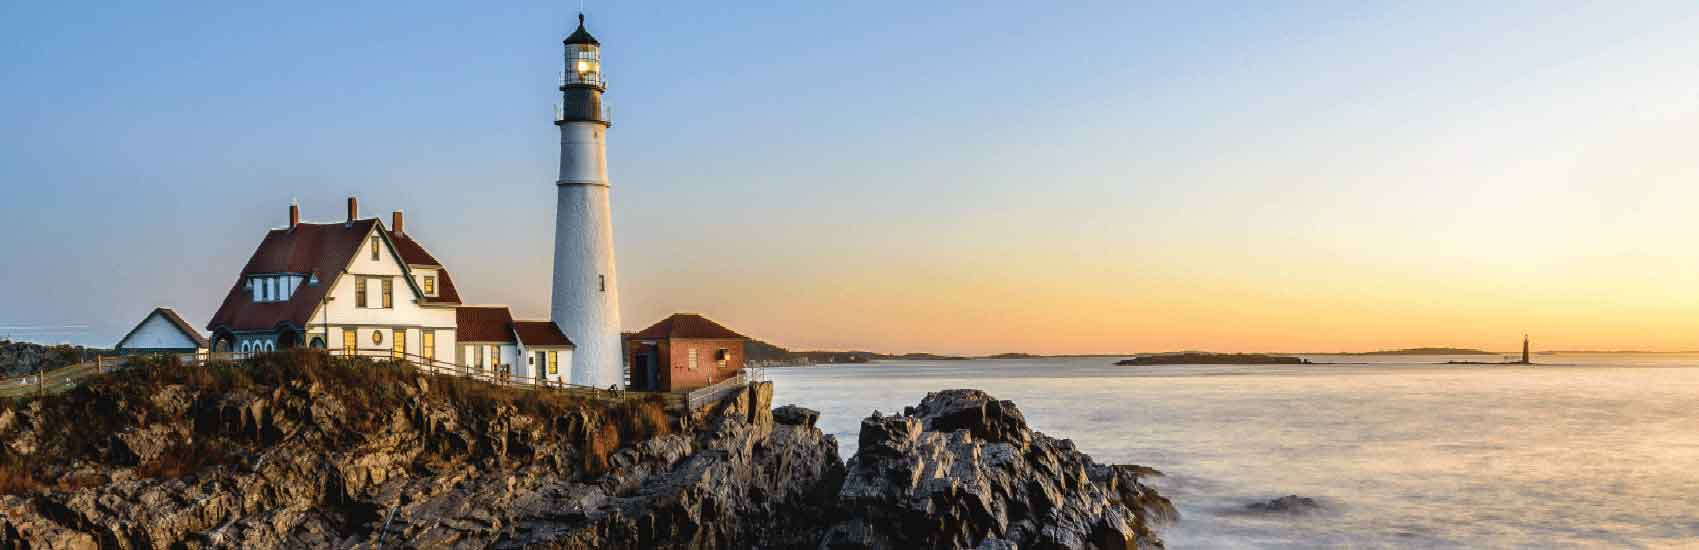 Discover the Beauty of The America's with Silversea 1